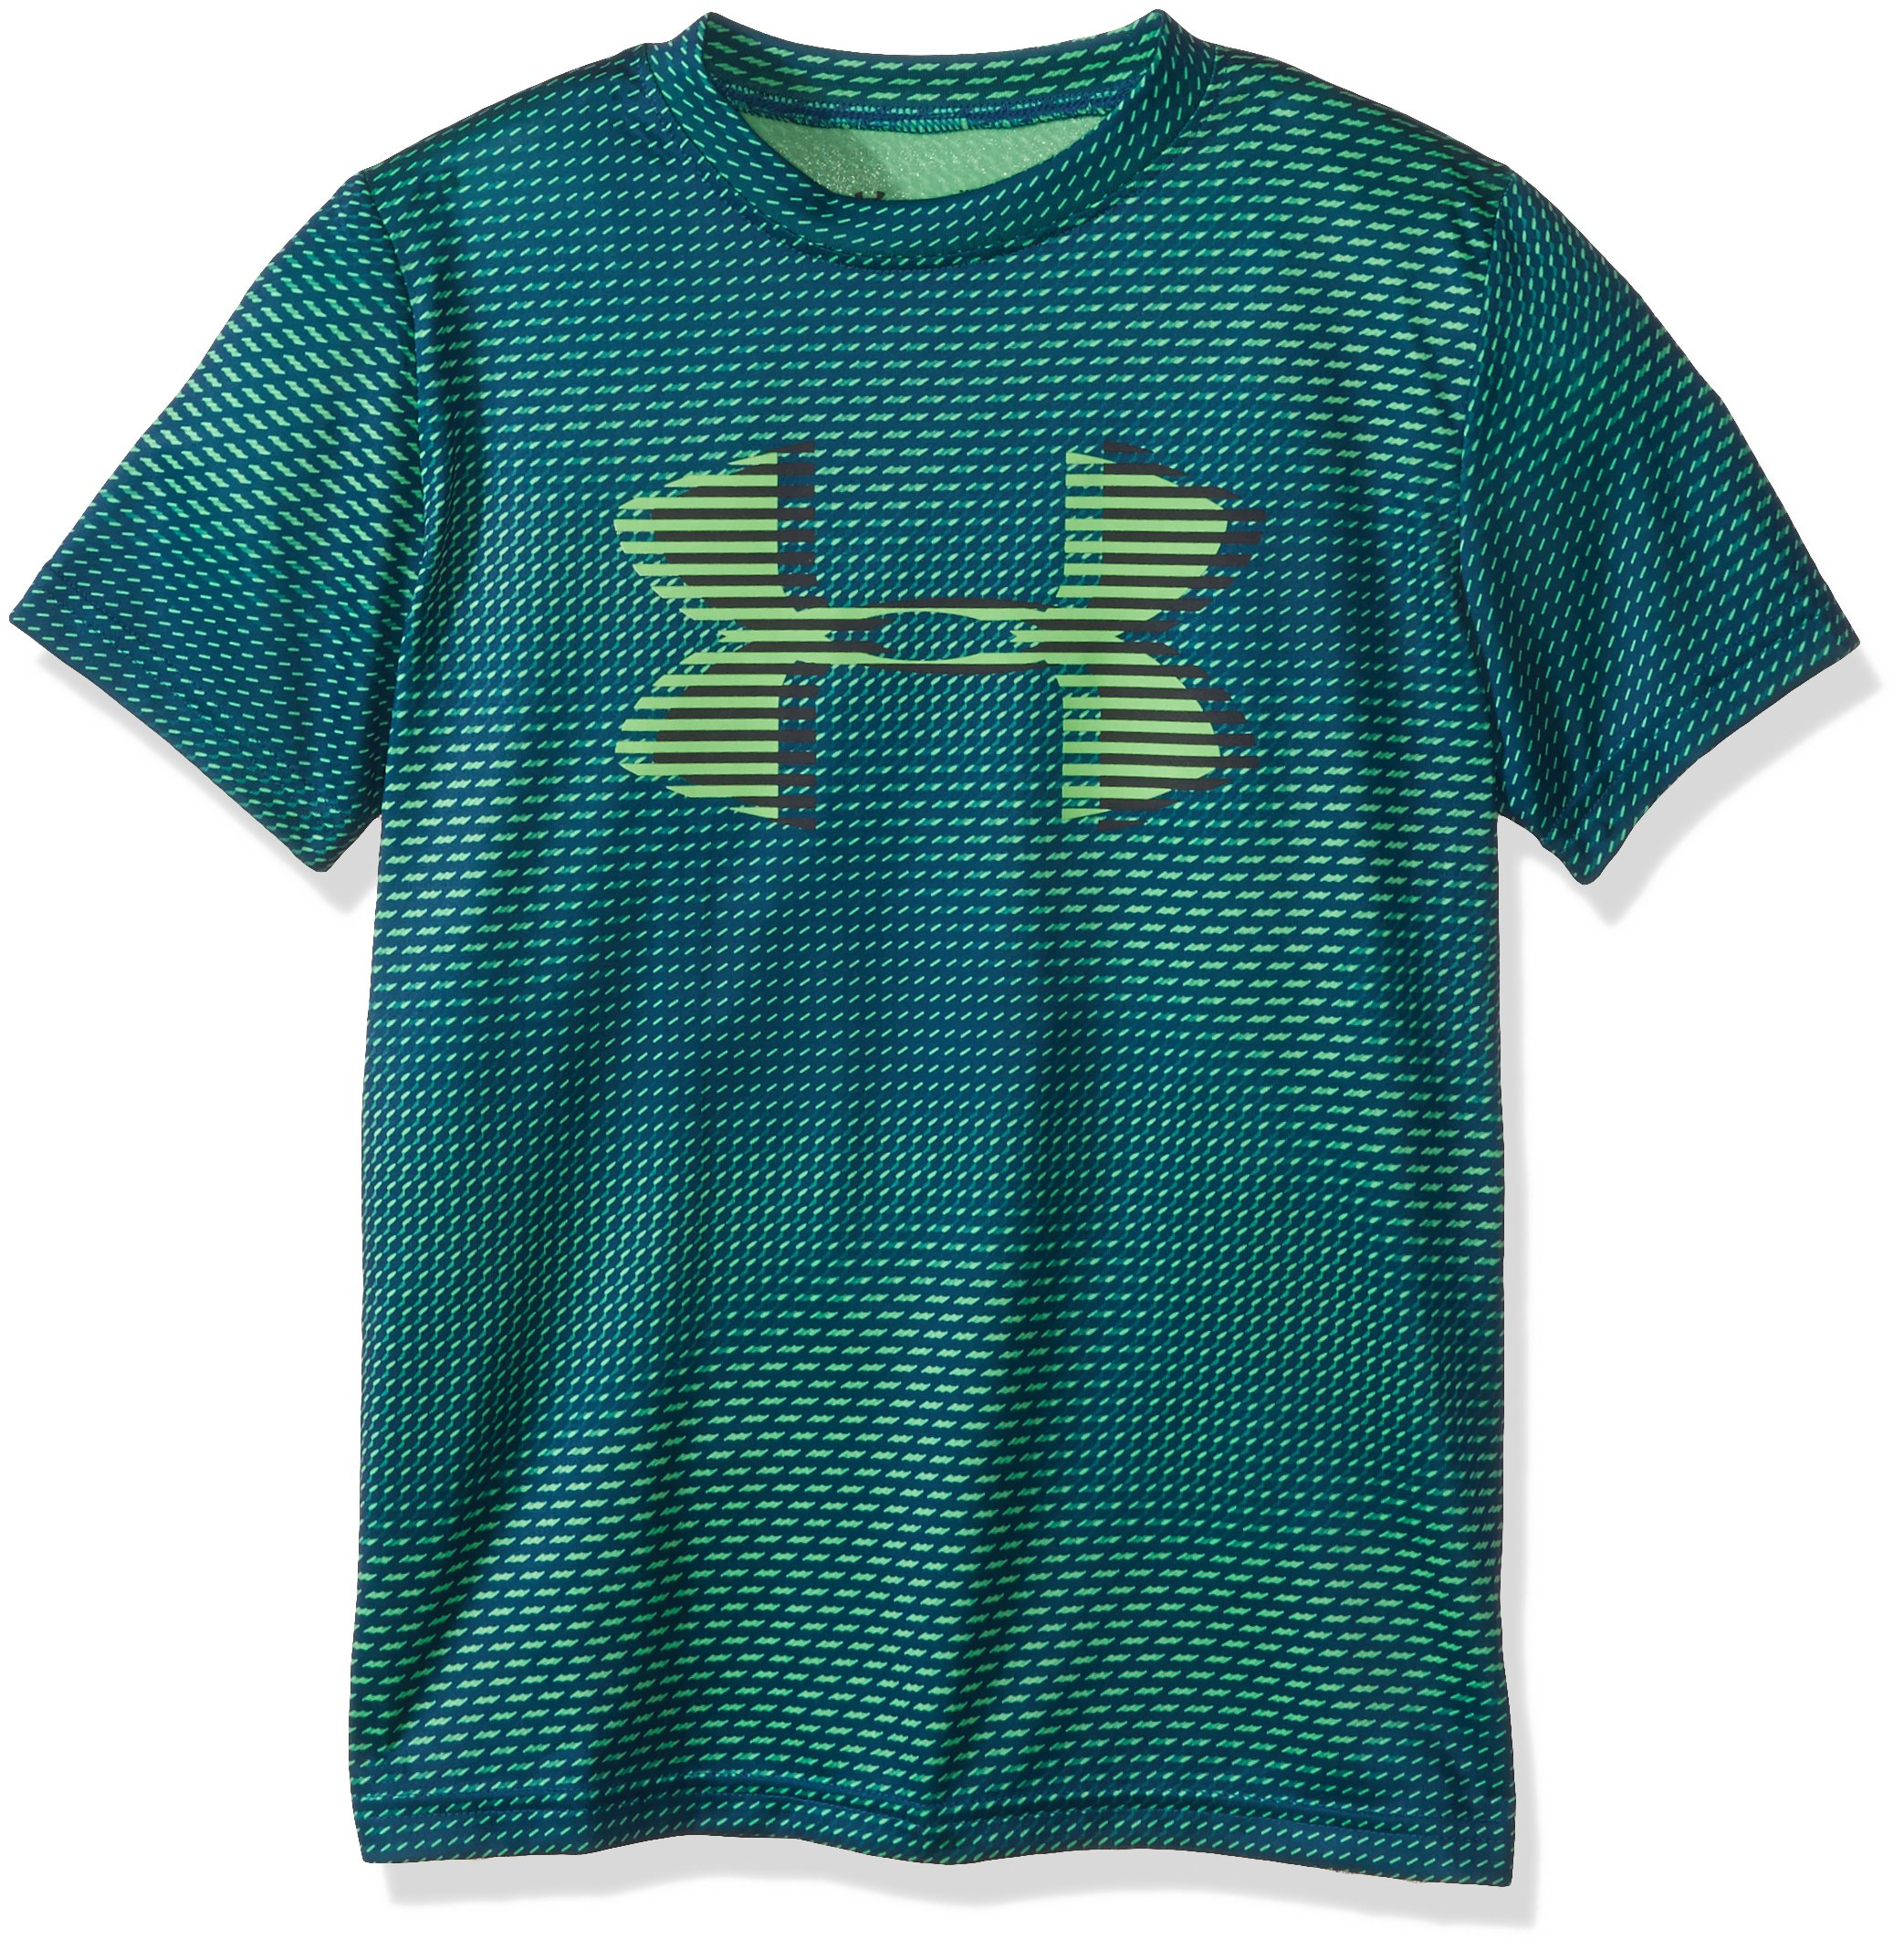 Under Armour Boys' Tech Big Logo Printed T-Shirt, Arena Green (701)/Academy, Youth X-Small by Under Armour